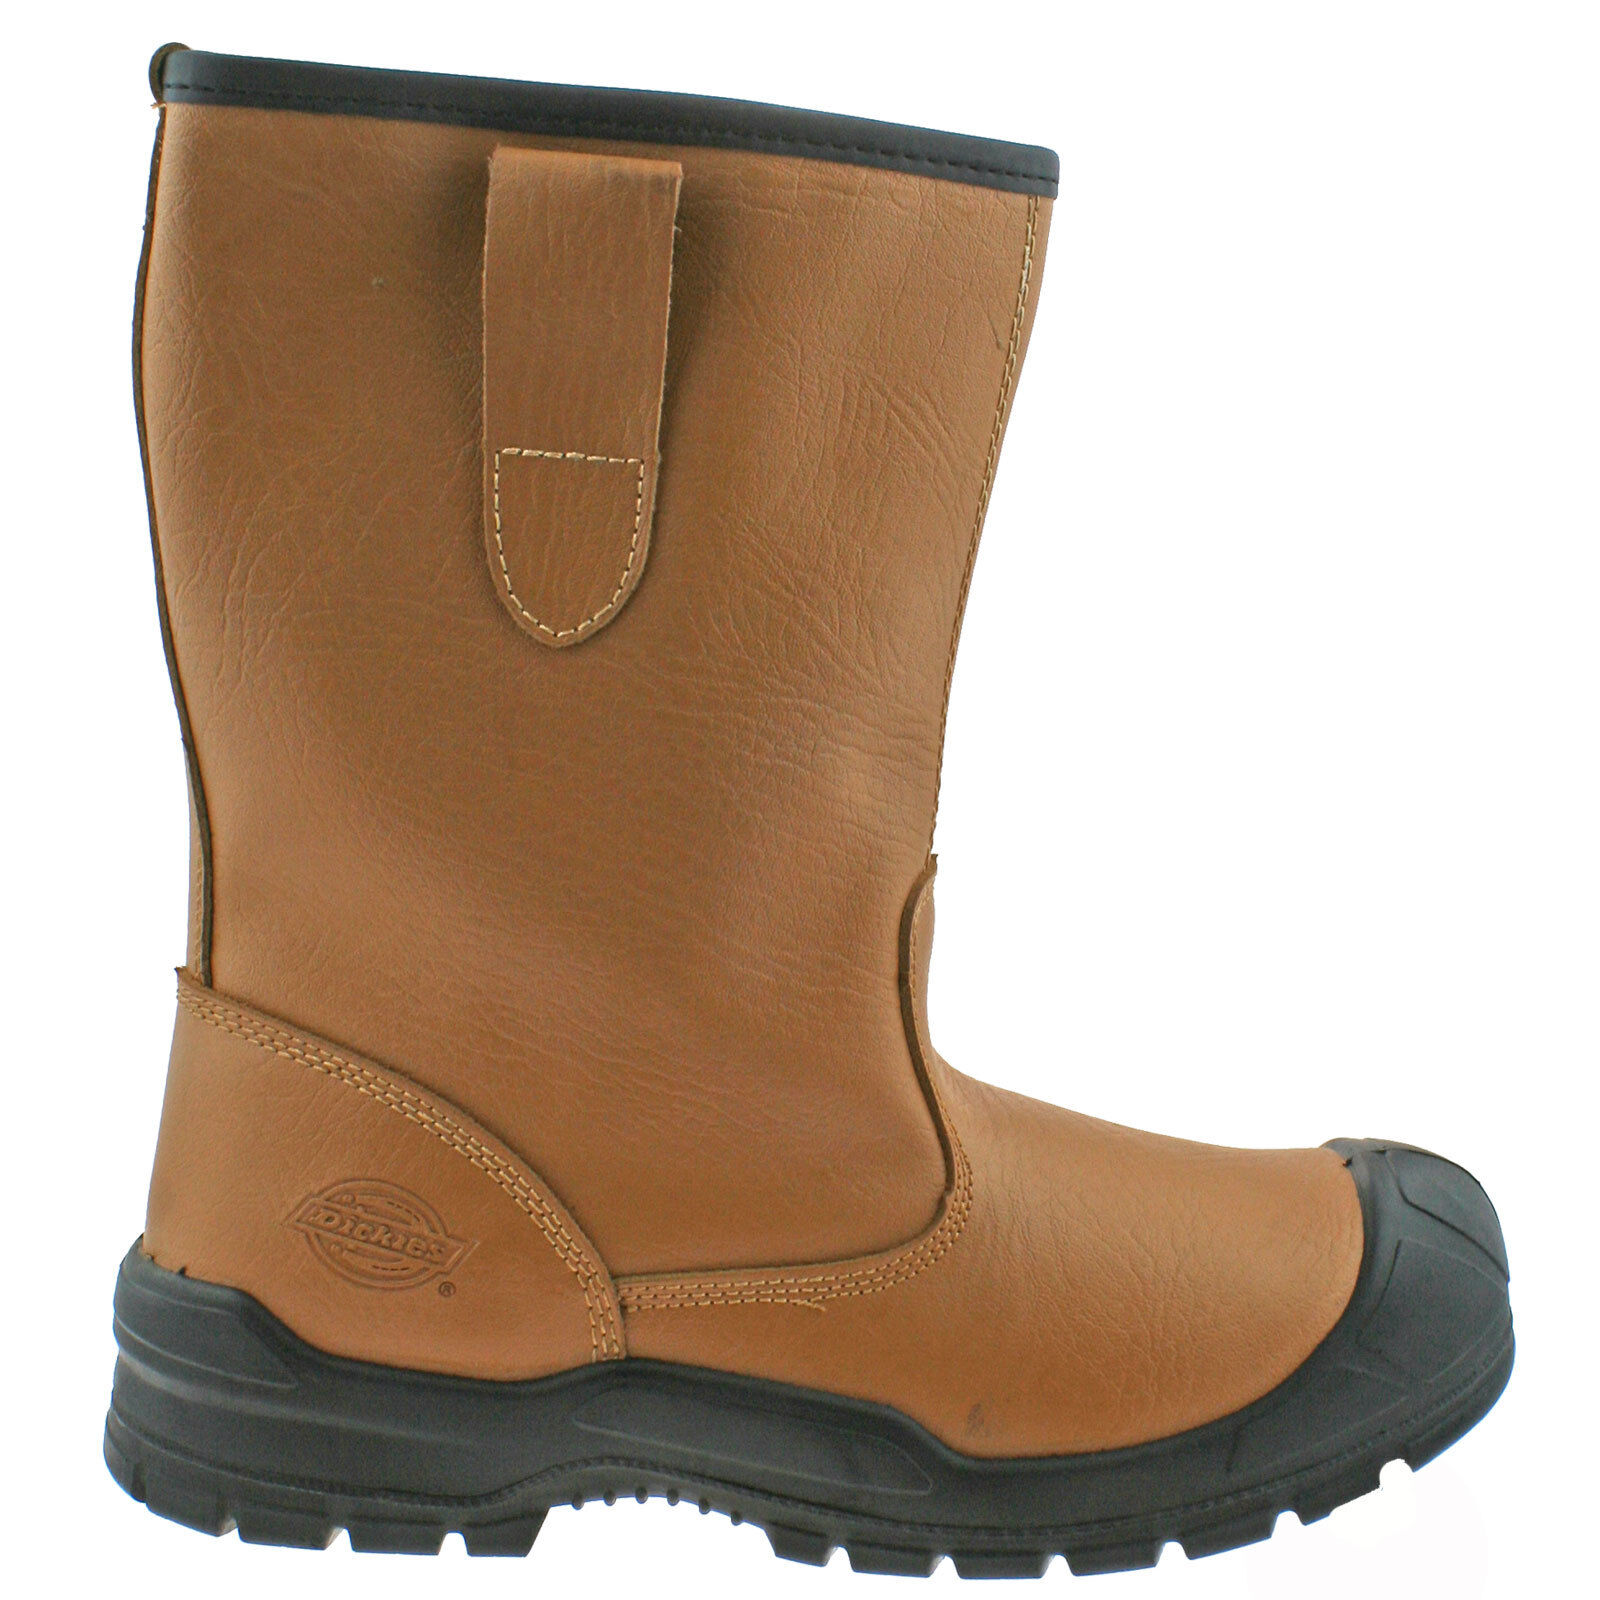 7ecc4d4b3a5 Details about MENS DICKIES DIXON LINED RIGGER TAN SCUFF CAP SAFETY STEEL  TOE CAP WORK BOOTS